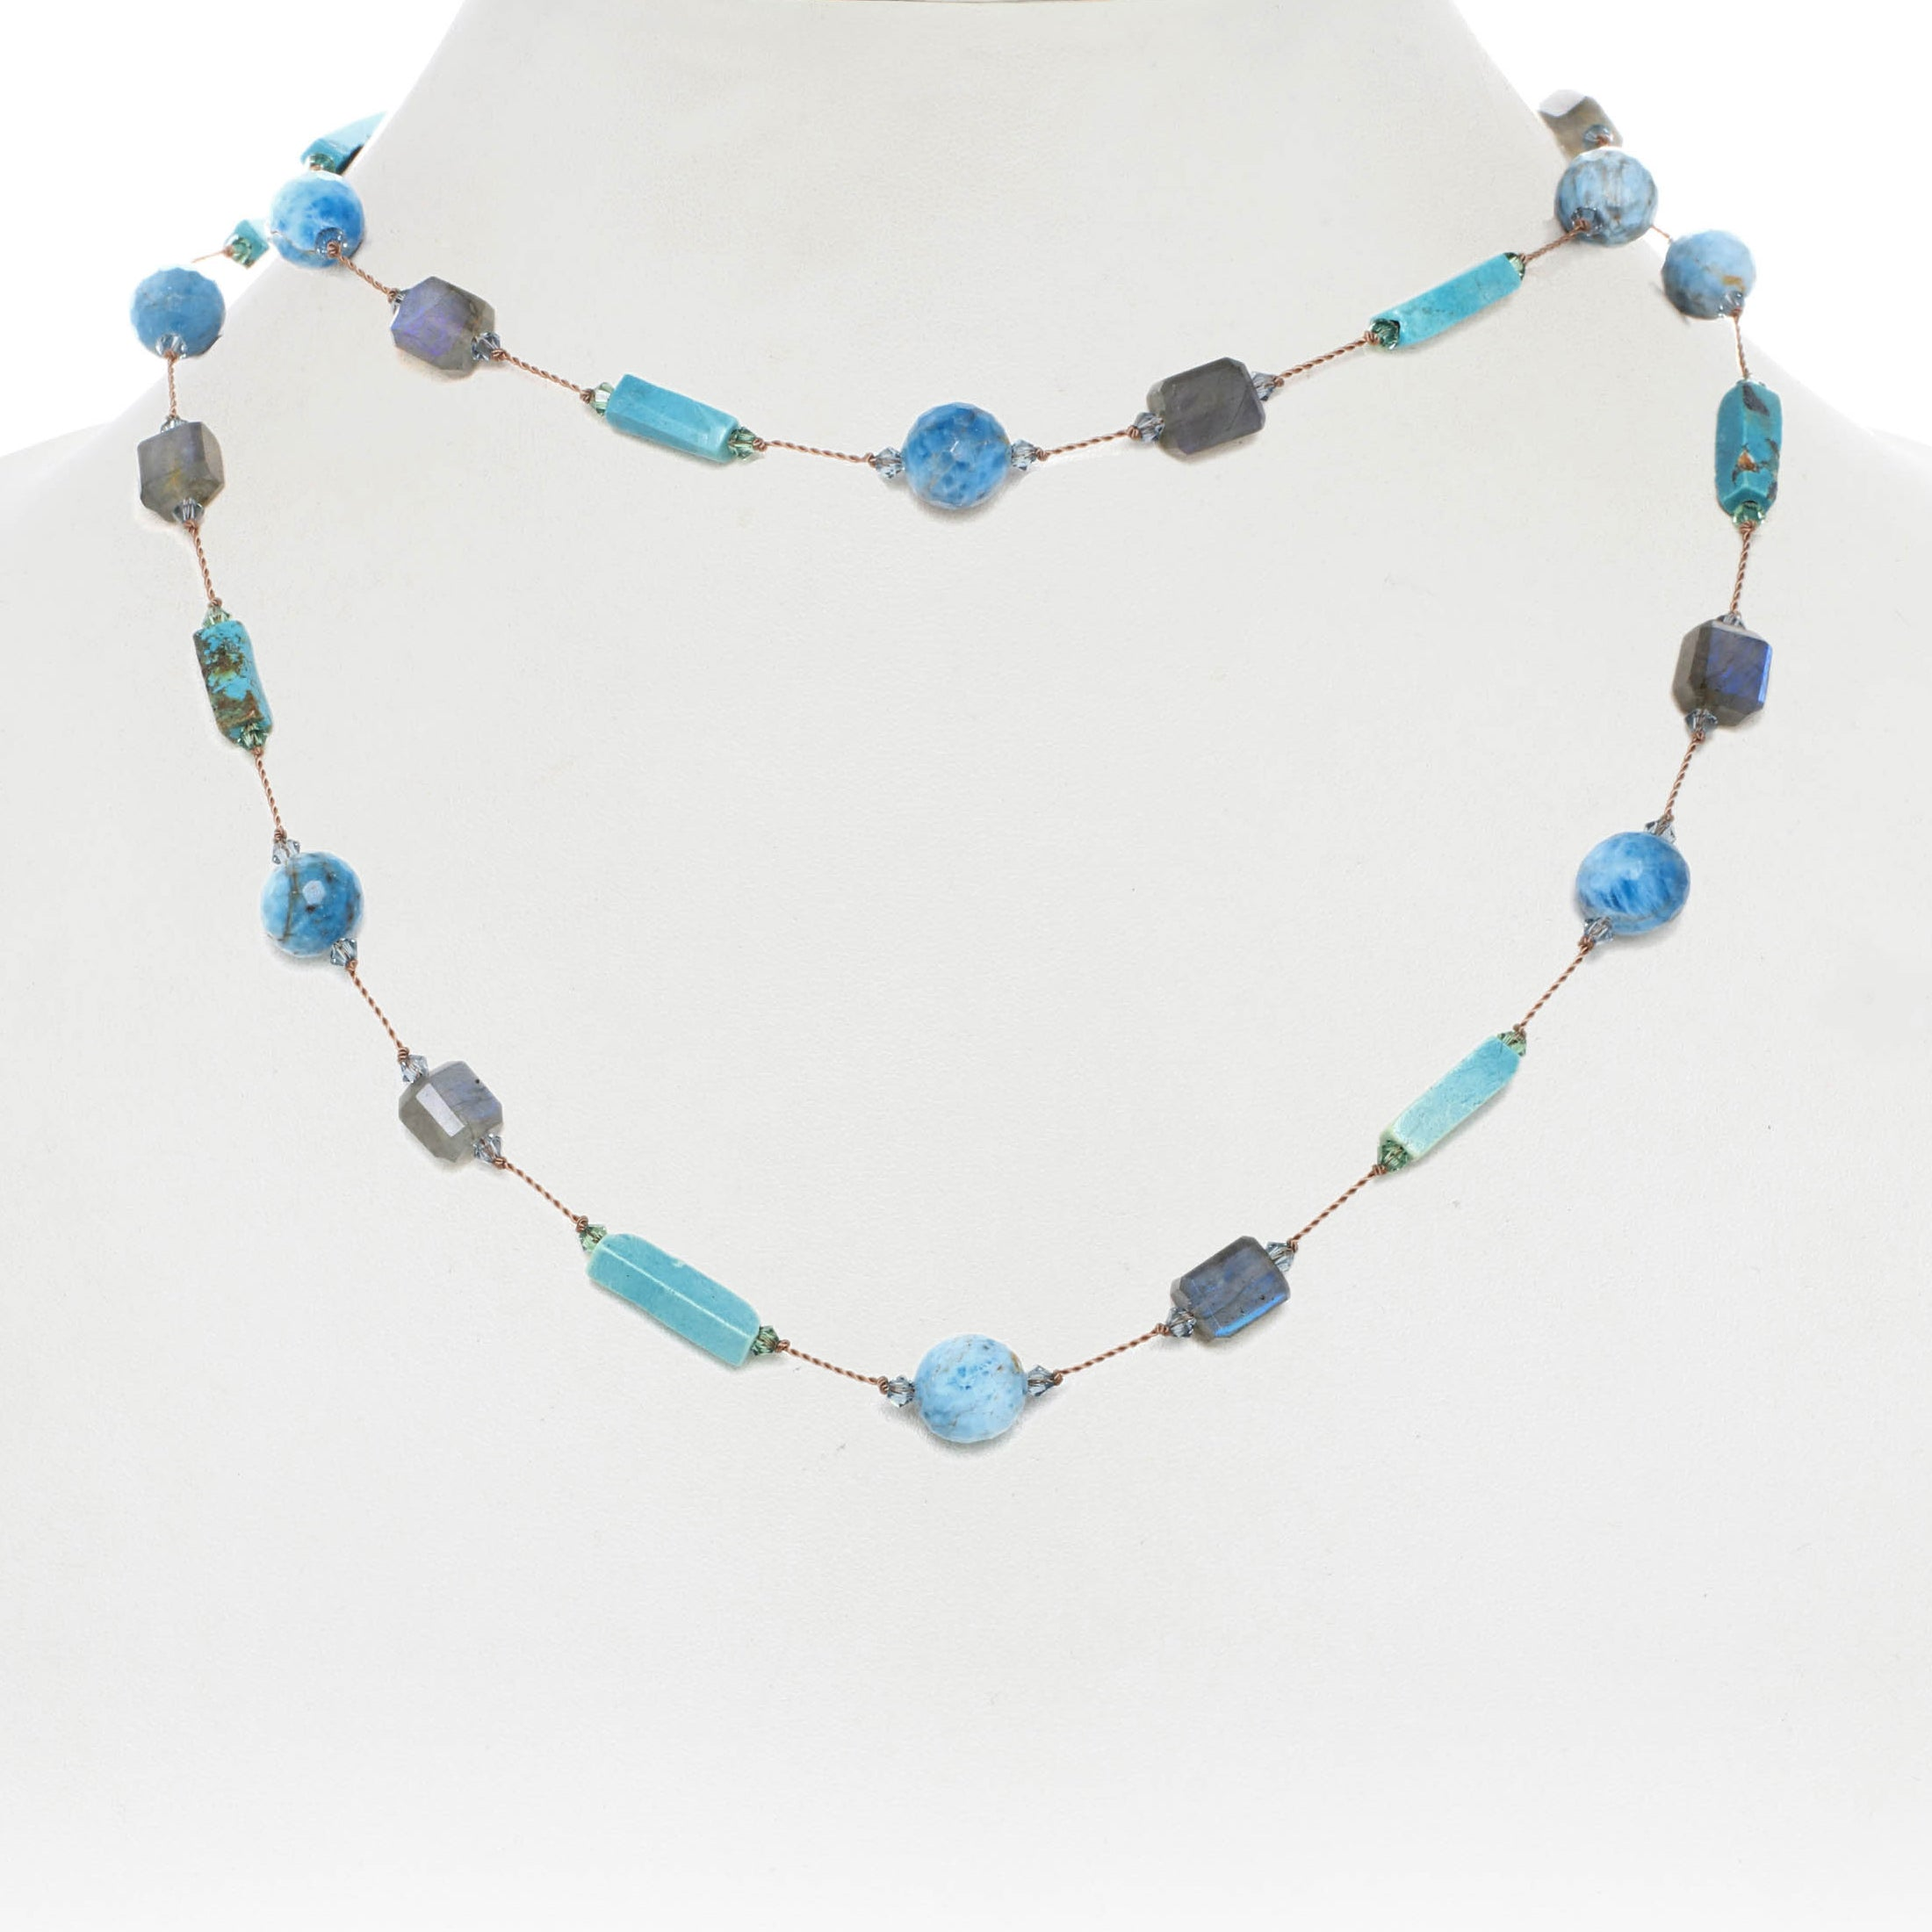 Labradorite, Apatite and Turquoise Gemstone Necklace, 35 Inches